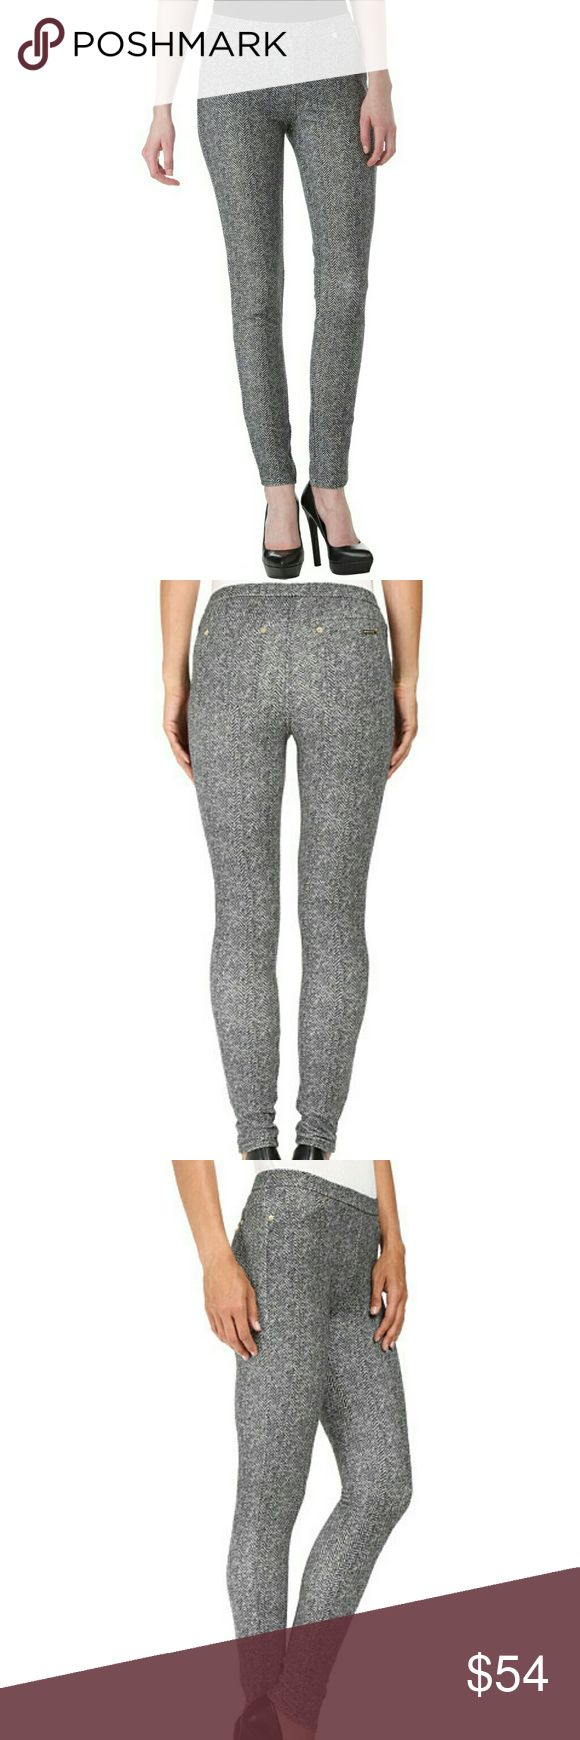 Michael Kors Petite Desert Tweed Print Leggings You will look and feel great in these Desert Tweed Print Knit Leggings from Michael Kors. Features MK symbol embellishments around the front and back pockets.  Color: black and white   Specifications Material54% Cotton, 42% Polyester, 4% Elastane Michael Kors Pants